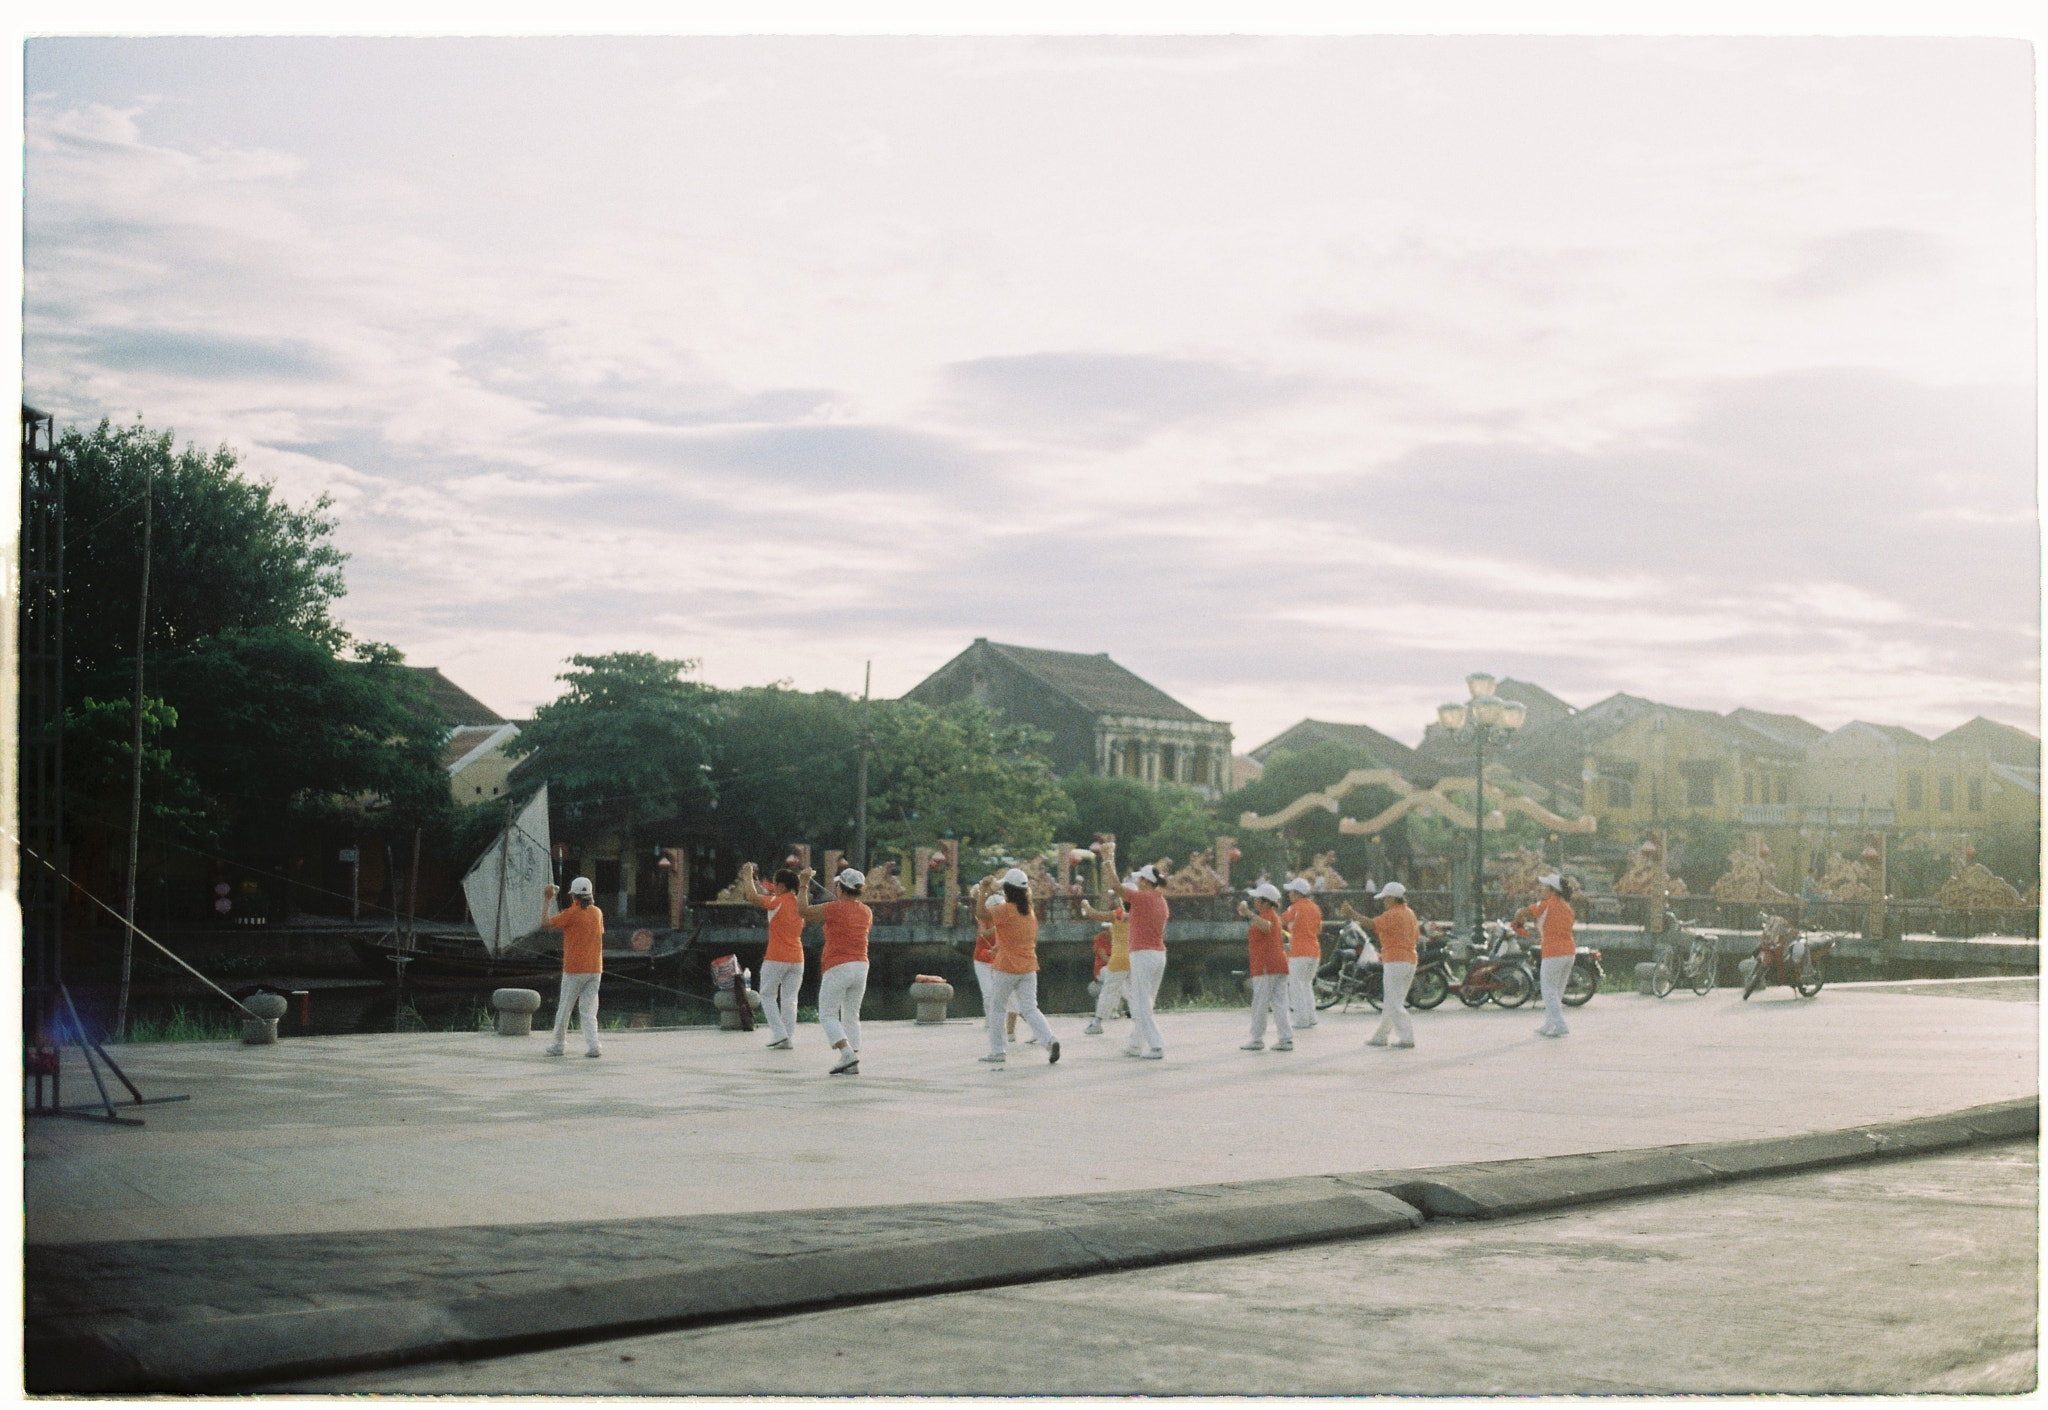 Photograph Morning exercise in Hoi An by Vân Finger on 500px